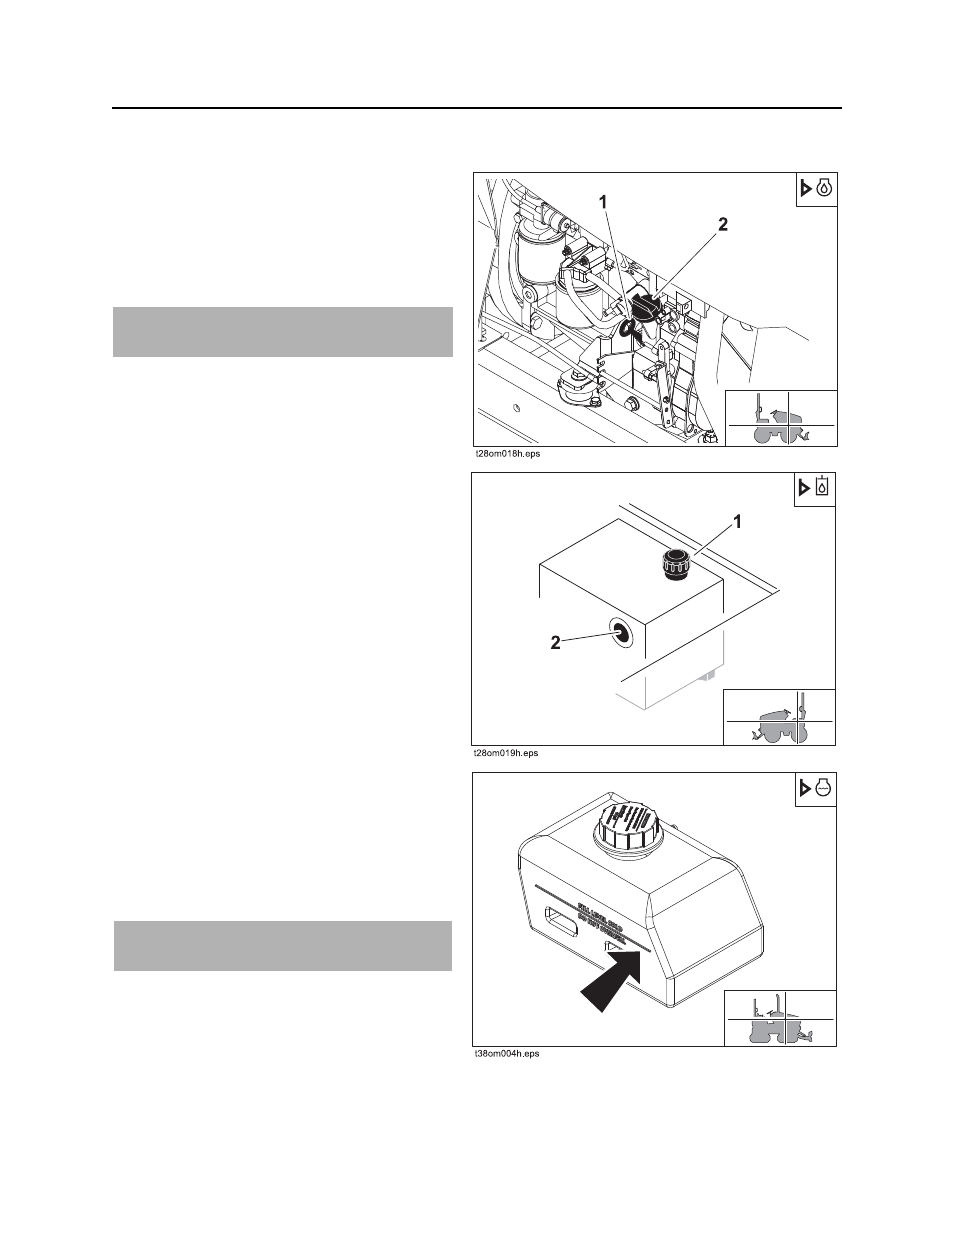 Tractor, Rt45 operator's manual | Ditch Witch RT45 User